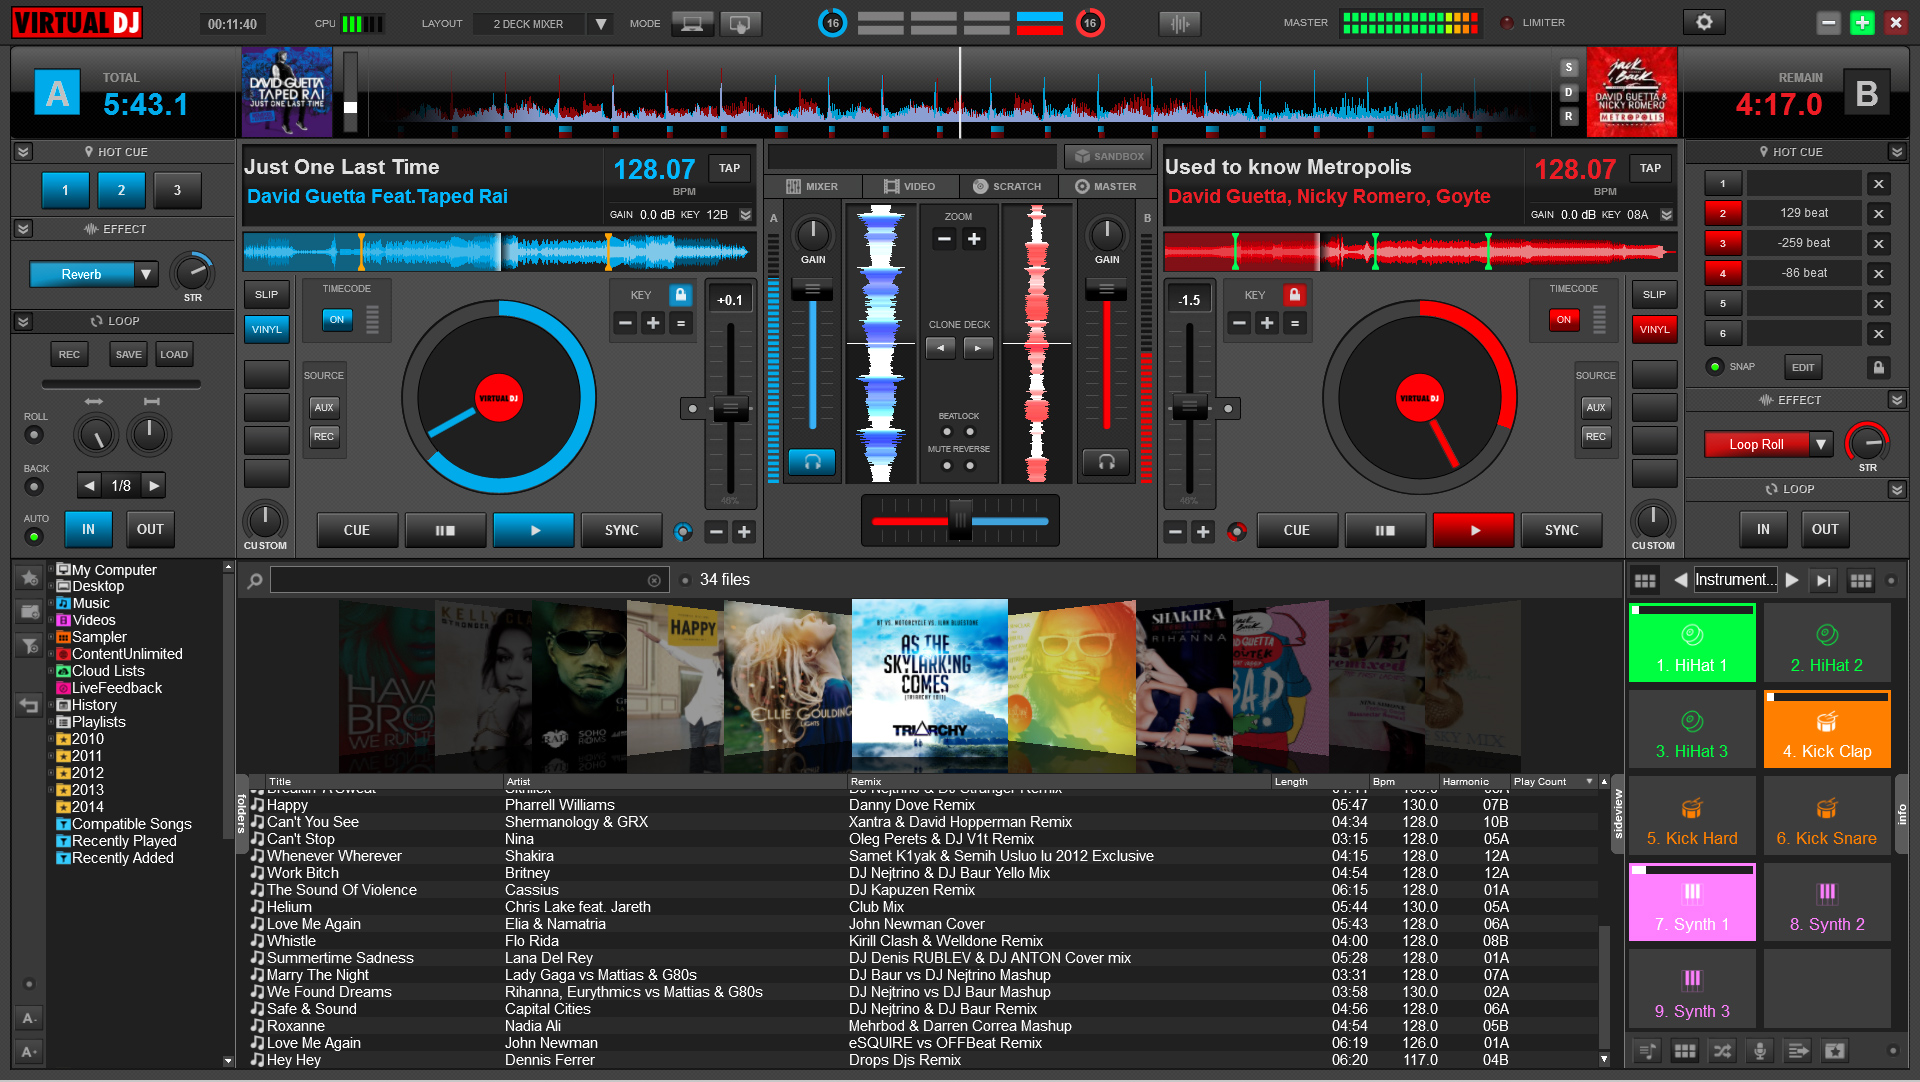 virtual dj home free 7.0.4 gratis